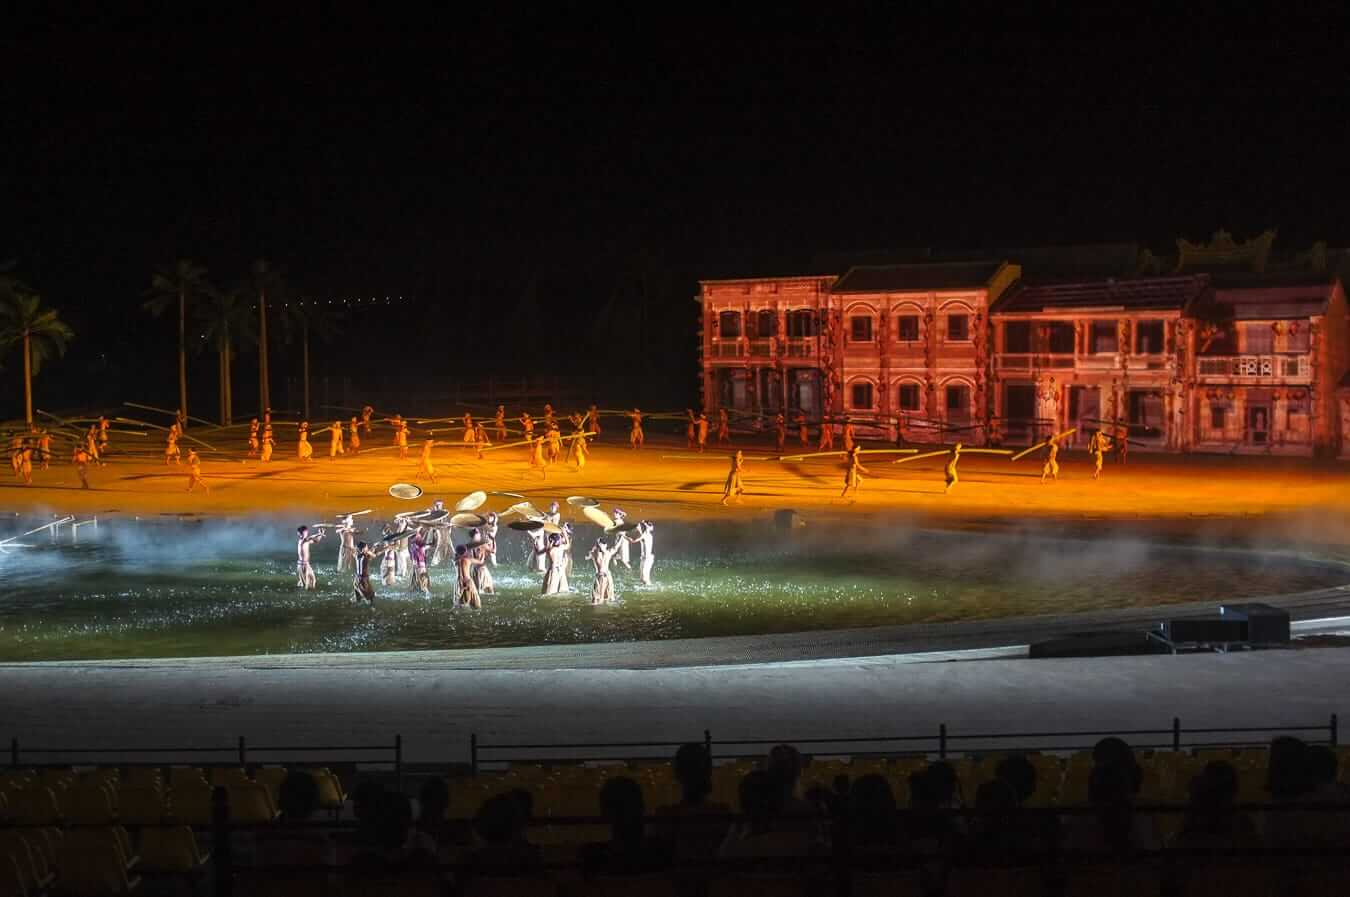 Impressions Show performers: Lune show Hoi An